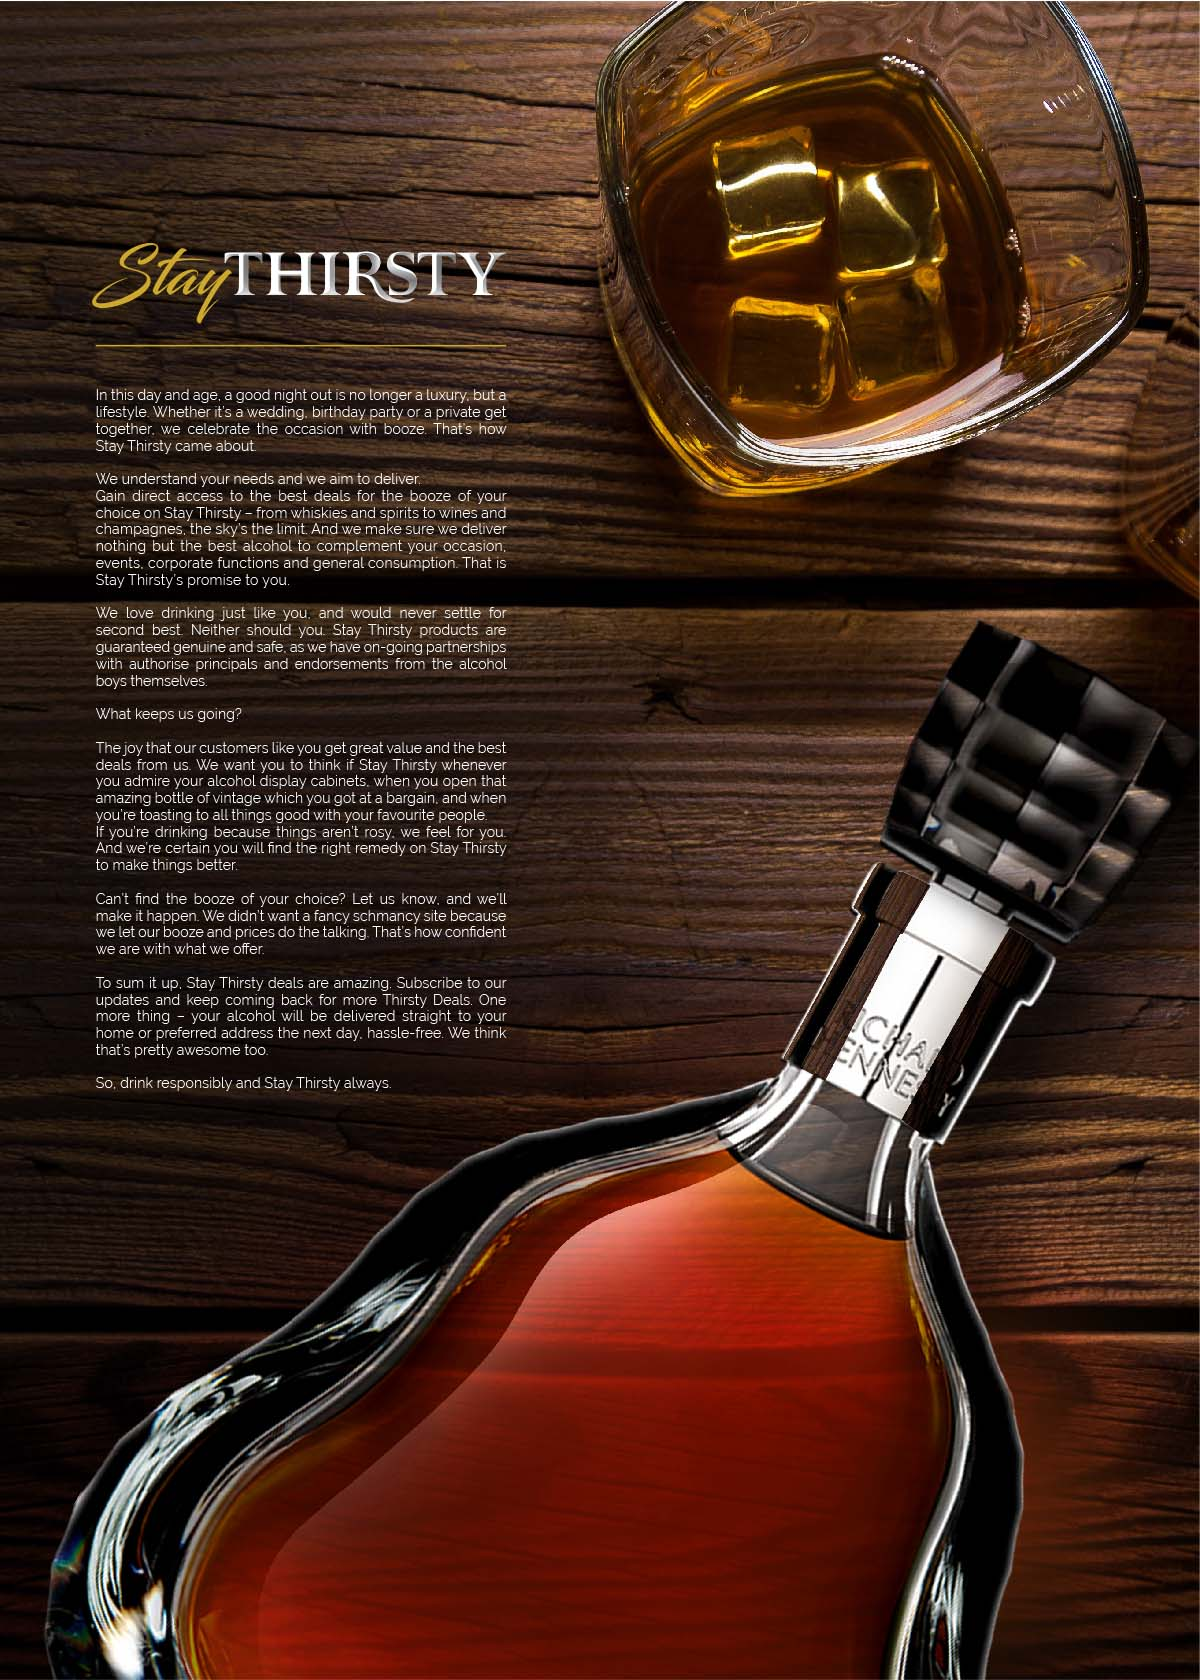 liquor online store malaysia, whiskies, stay thirsty, alcohol, liquor delivery service, buy liquor in malaysia